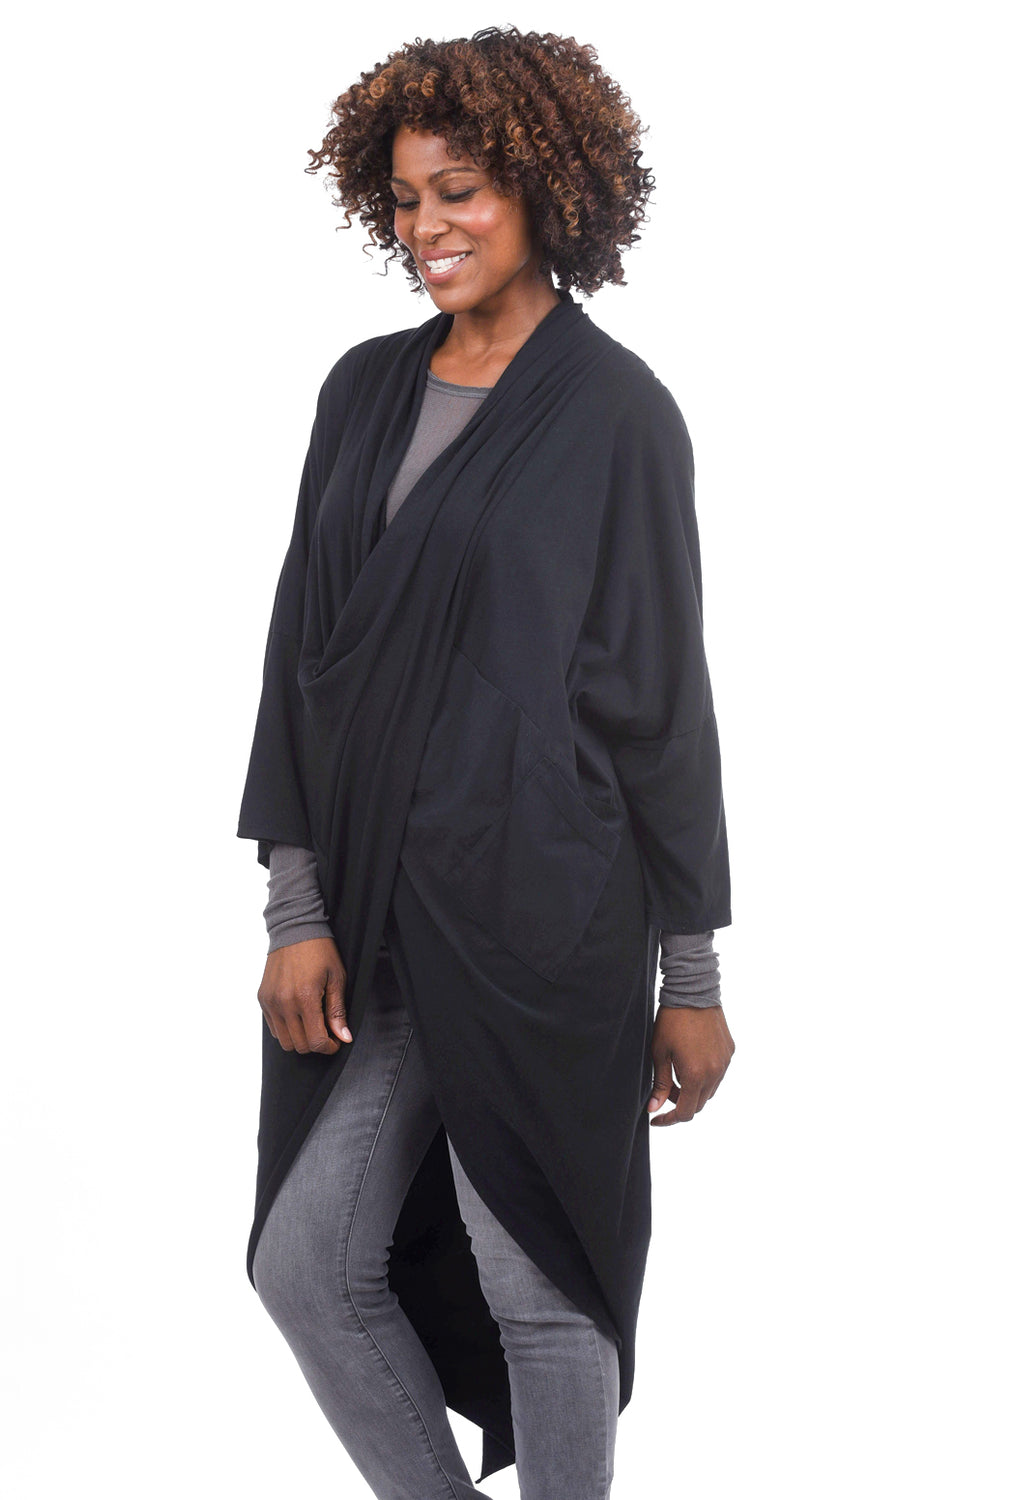 Oro Bonito Drape Front Topper, Black One Size Black